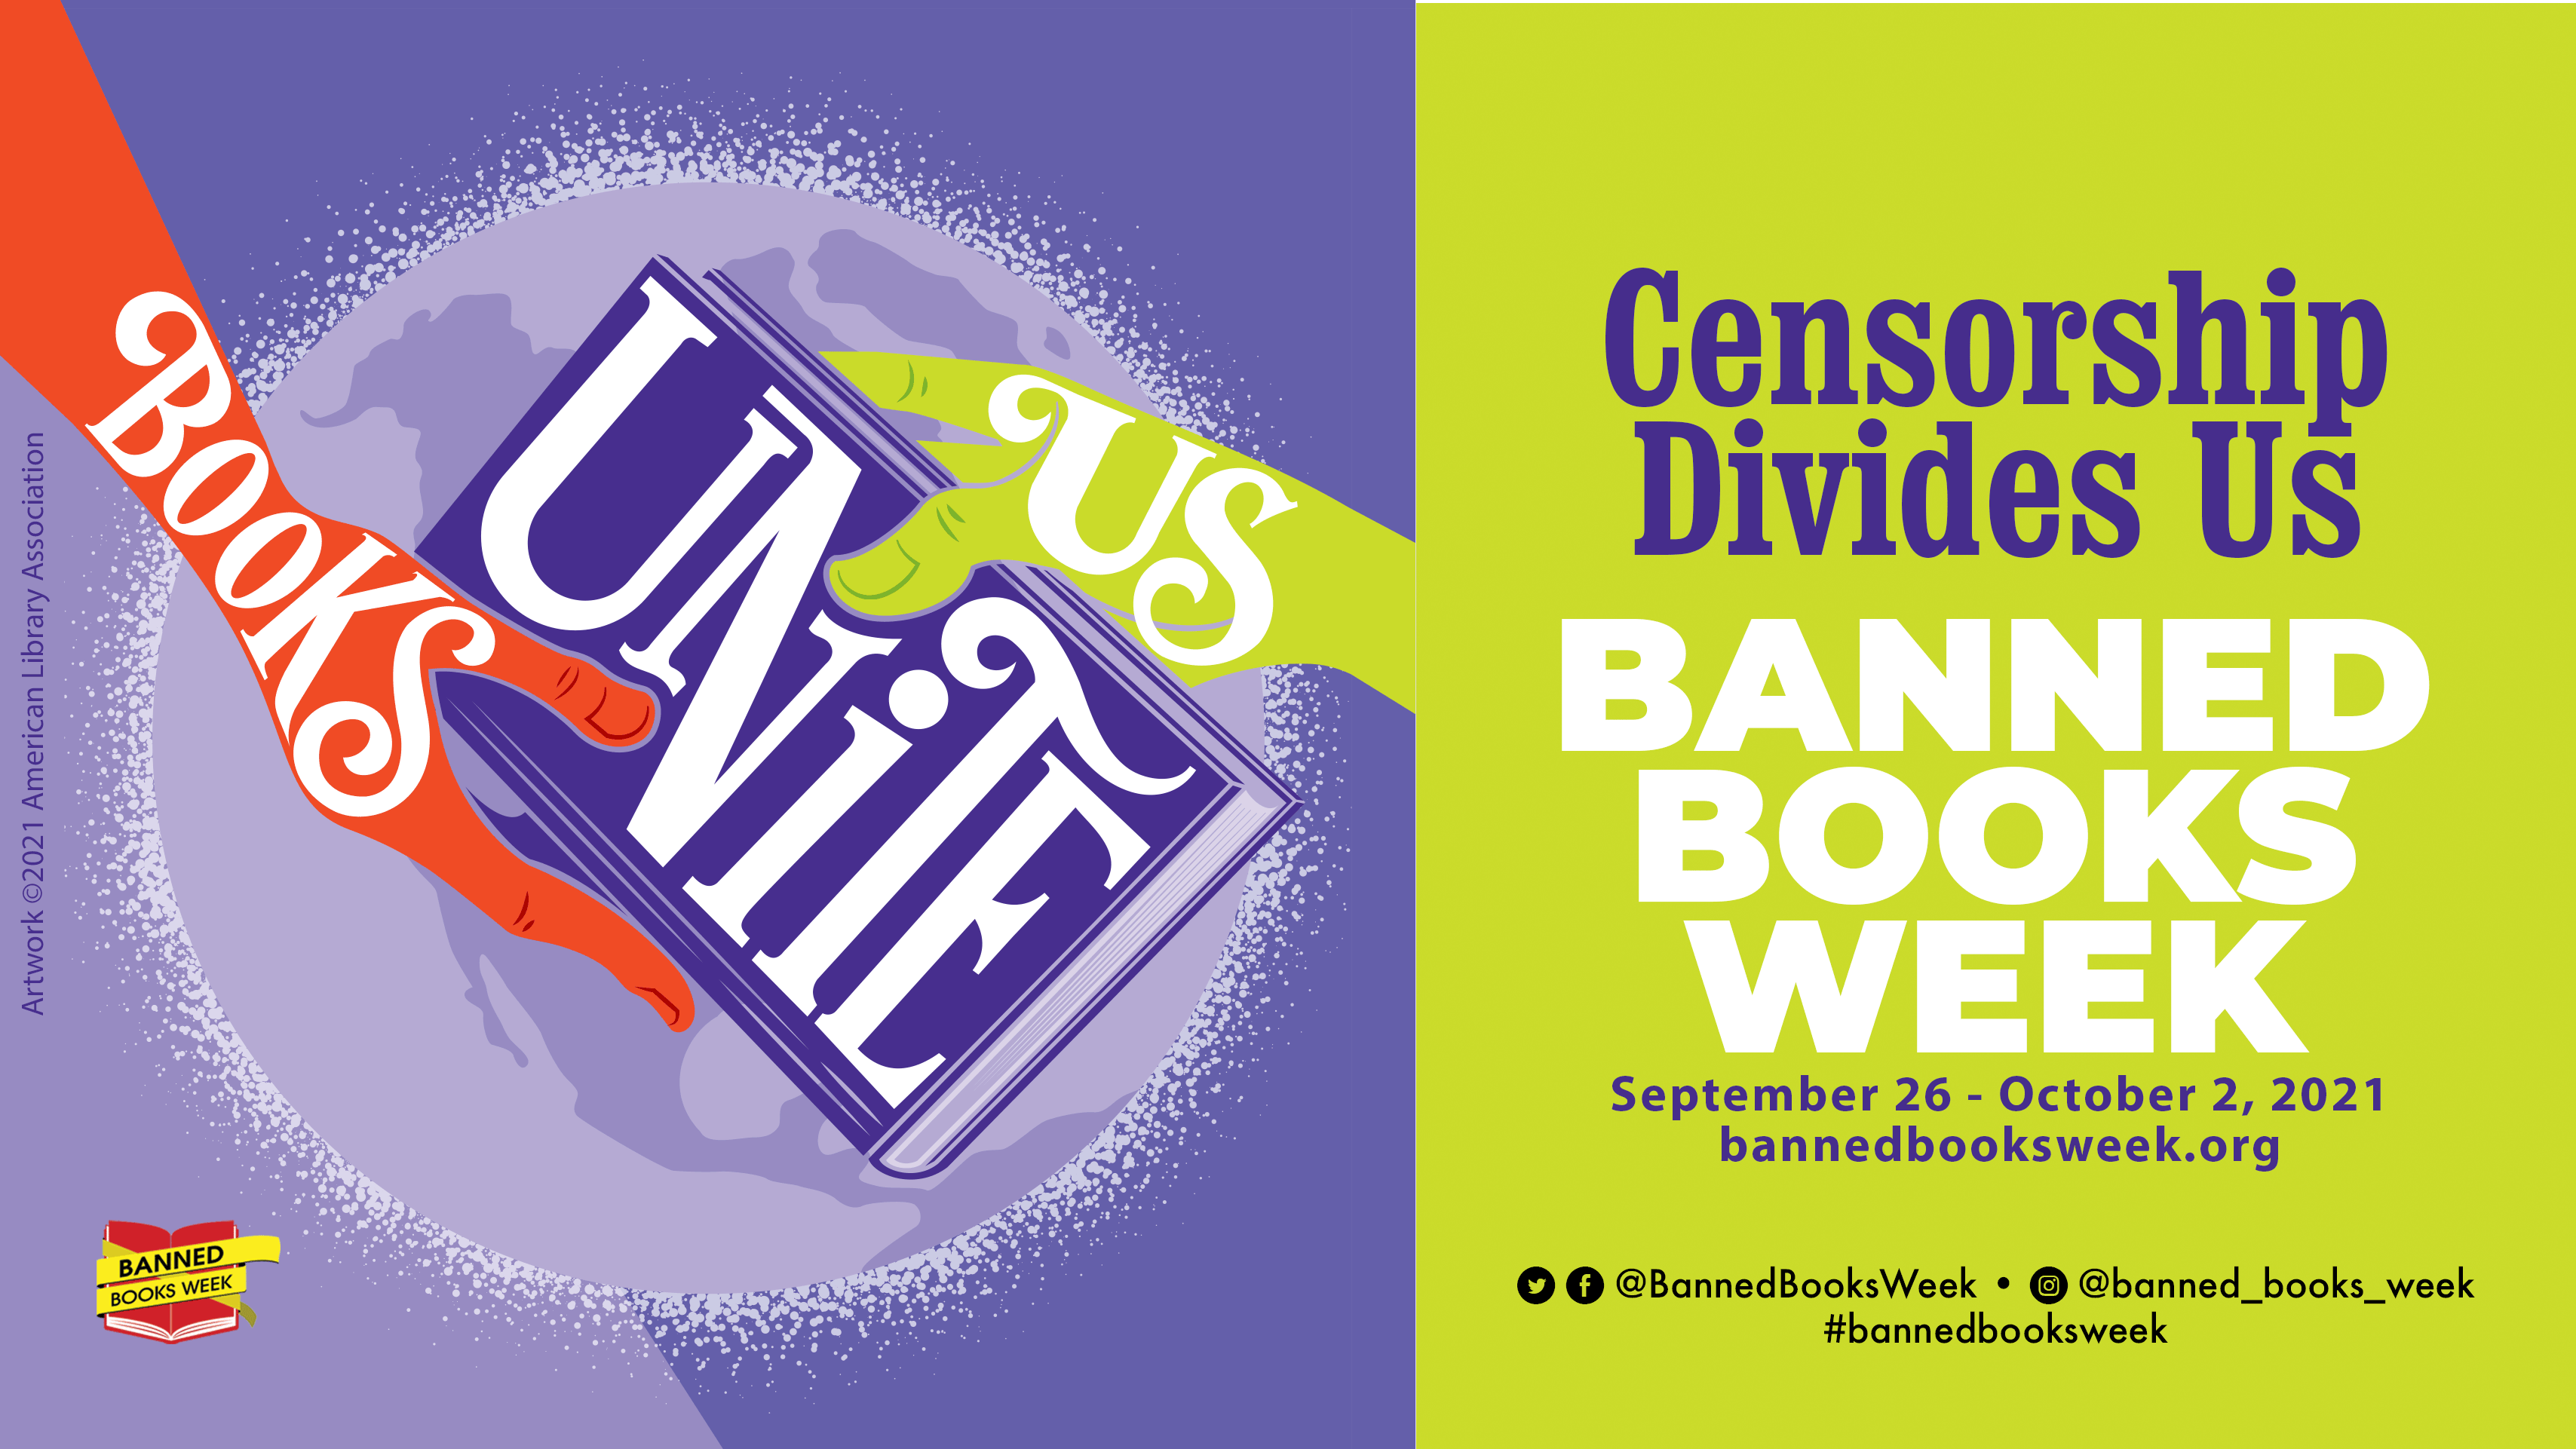 Celebrate Banned Books Week with Adult and Teen Services!